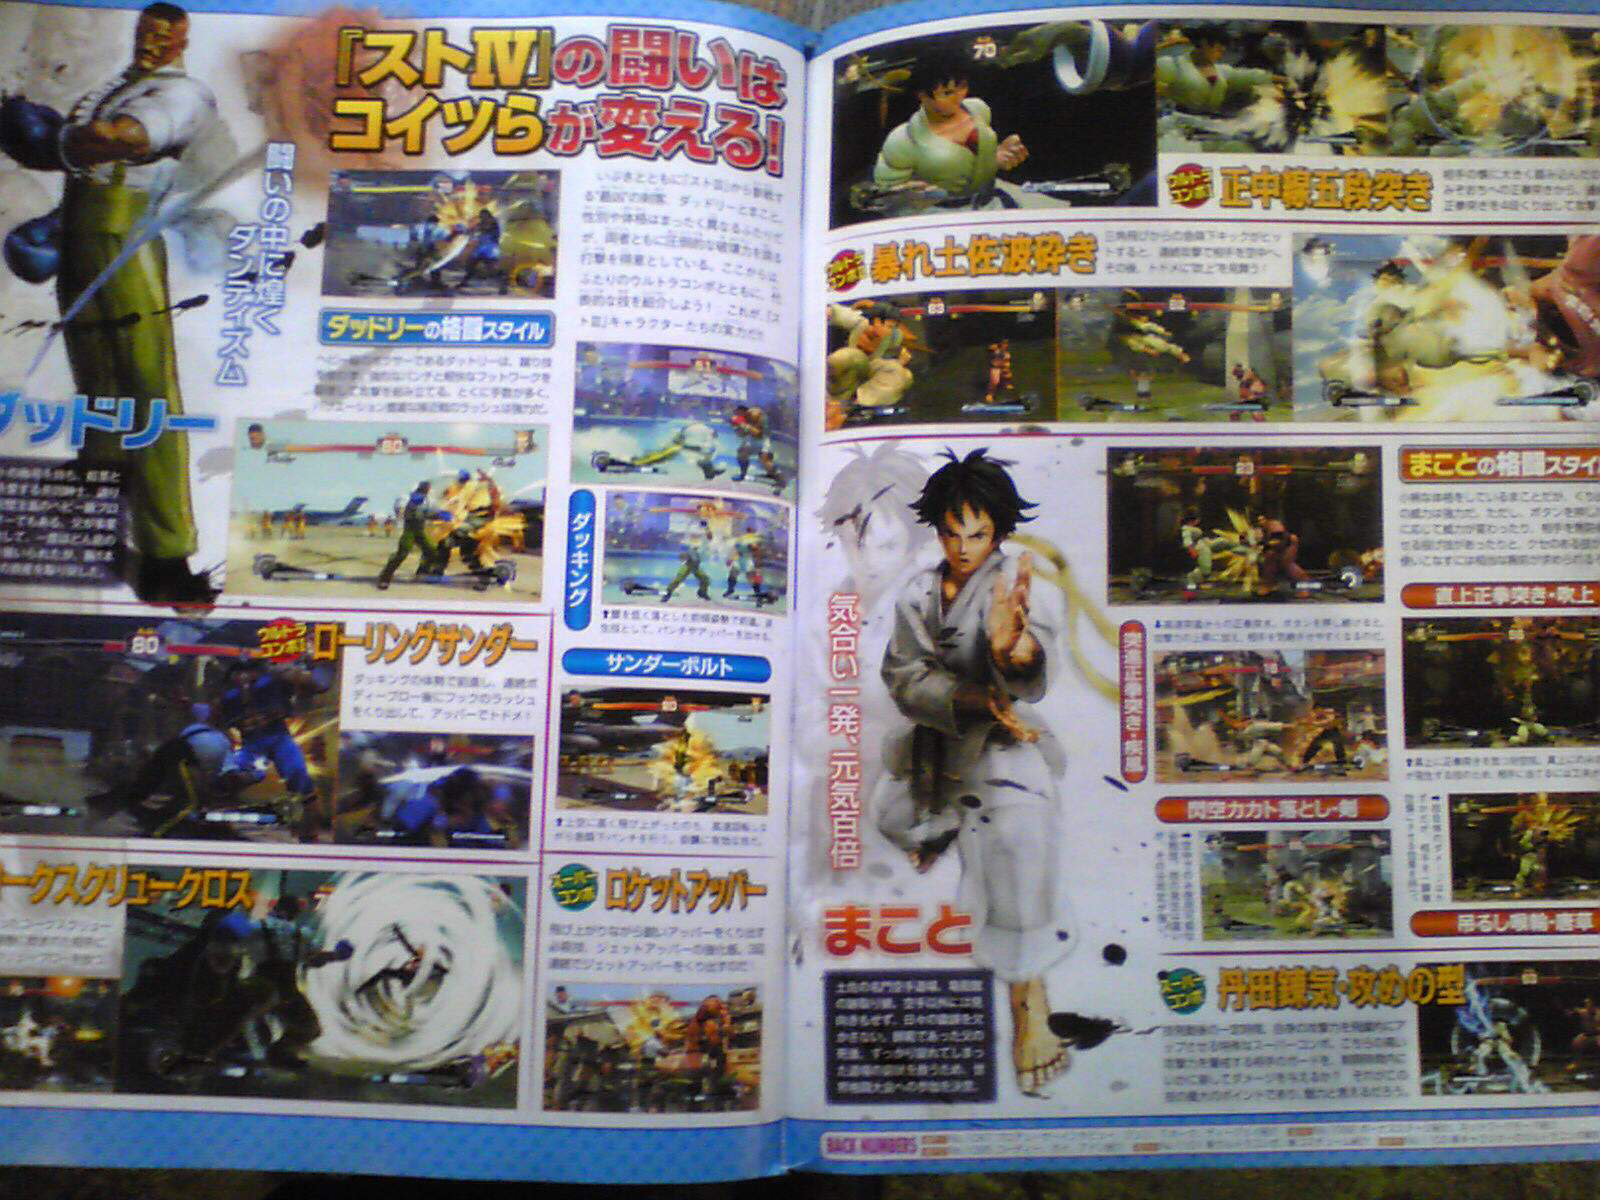 Second Famitsu scan showing Ibuki, Makoto and Dudley in Super Street Fighter 4